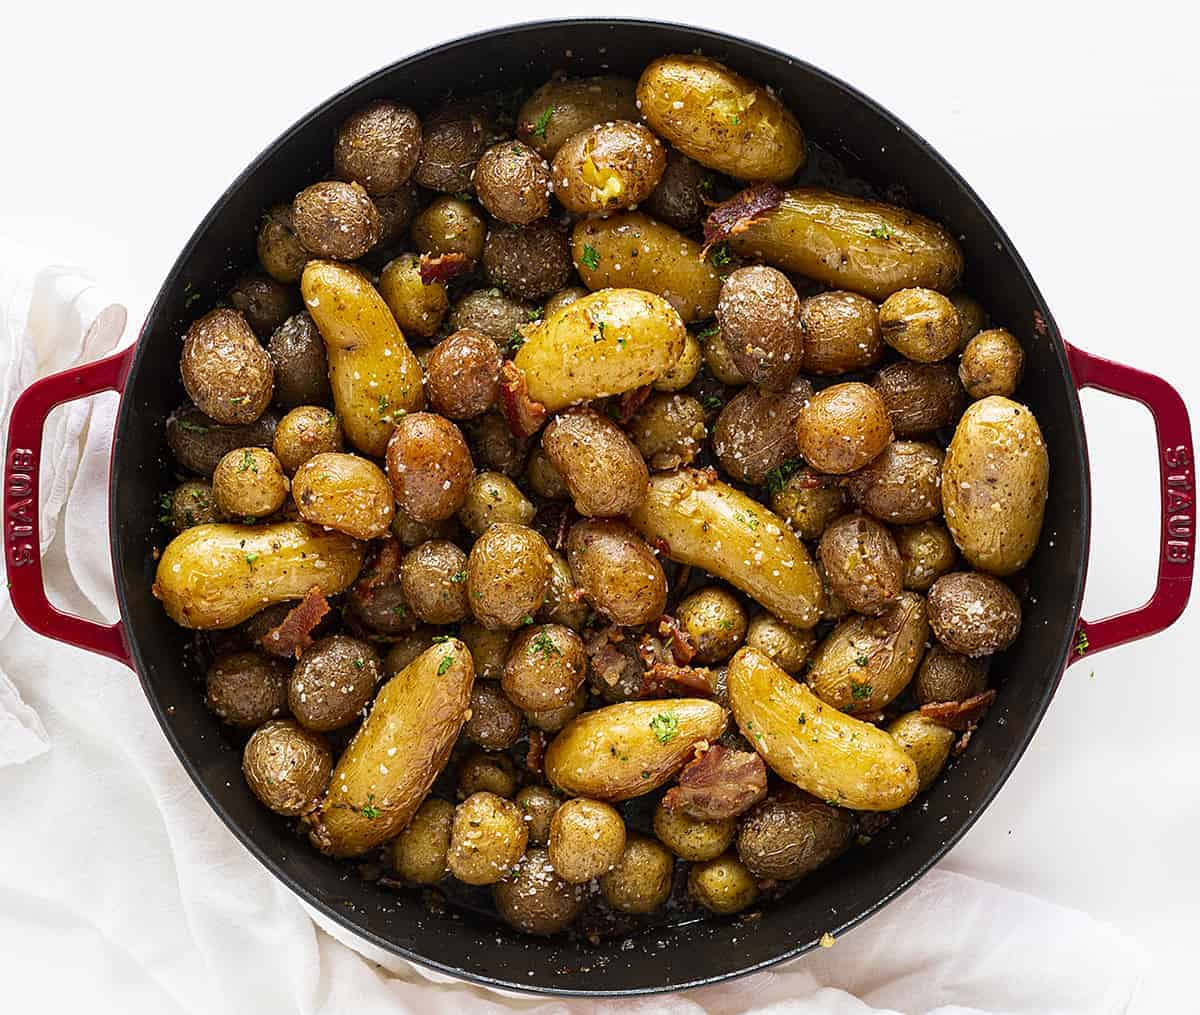 Roasted Potatoes with Bacon OVerhead View in Red Skillet on White Napkin